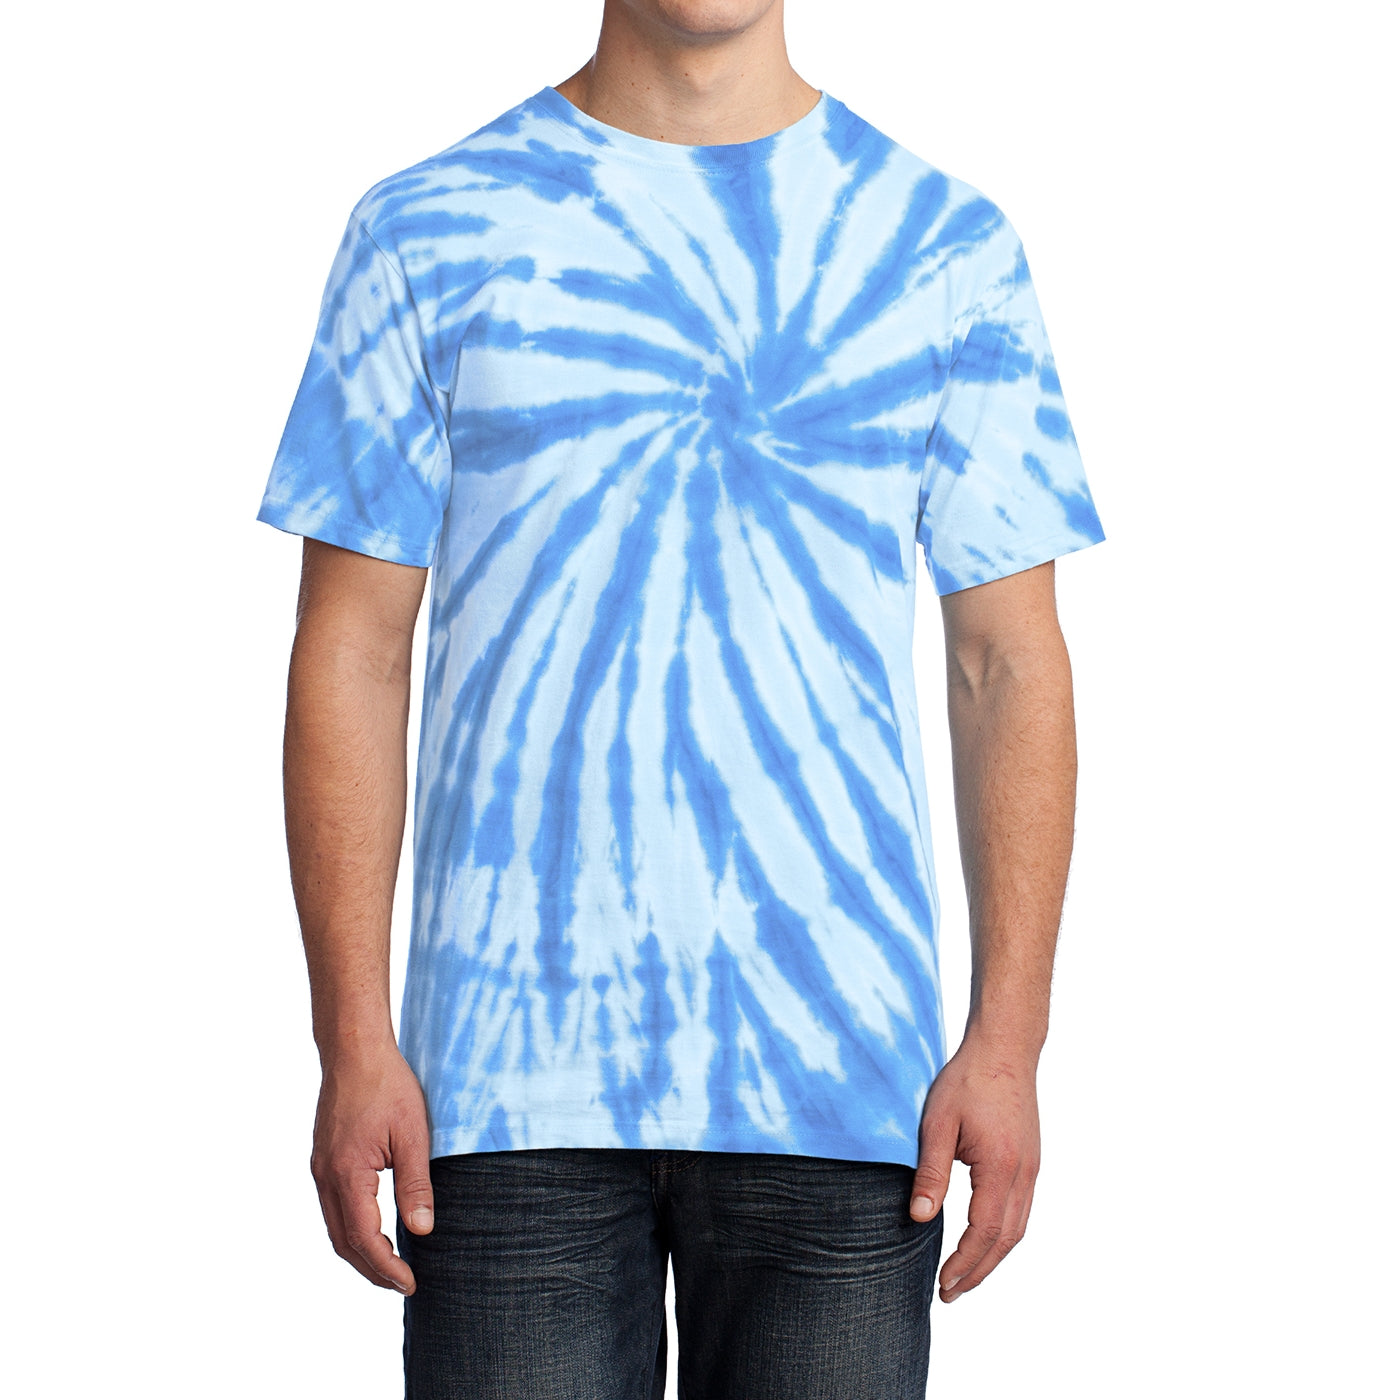 Men's Tie-Dye Tee - Light Blue - Front